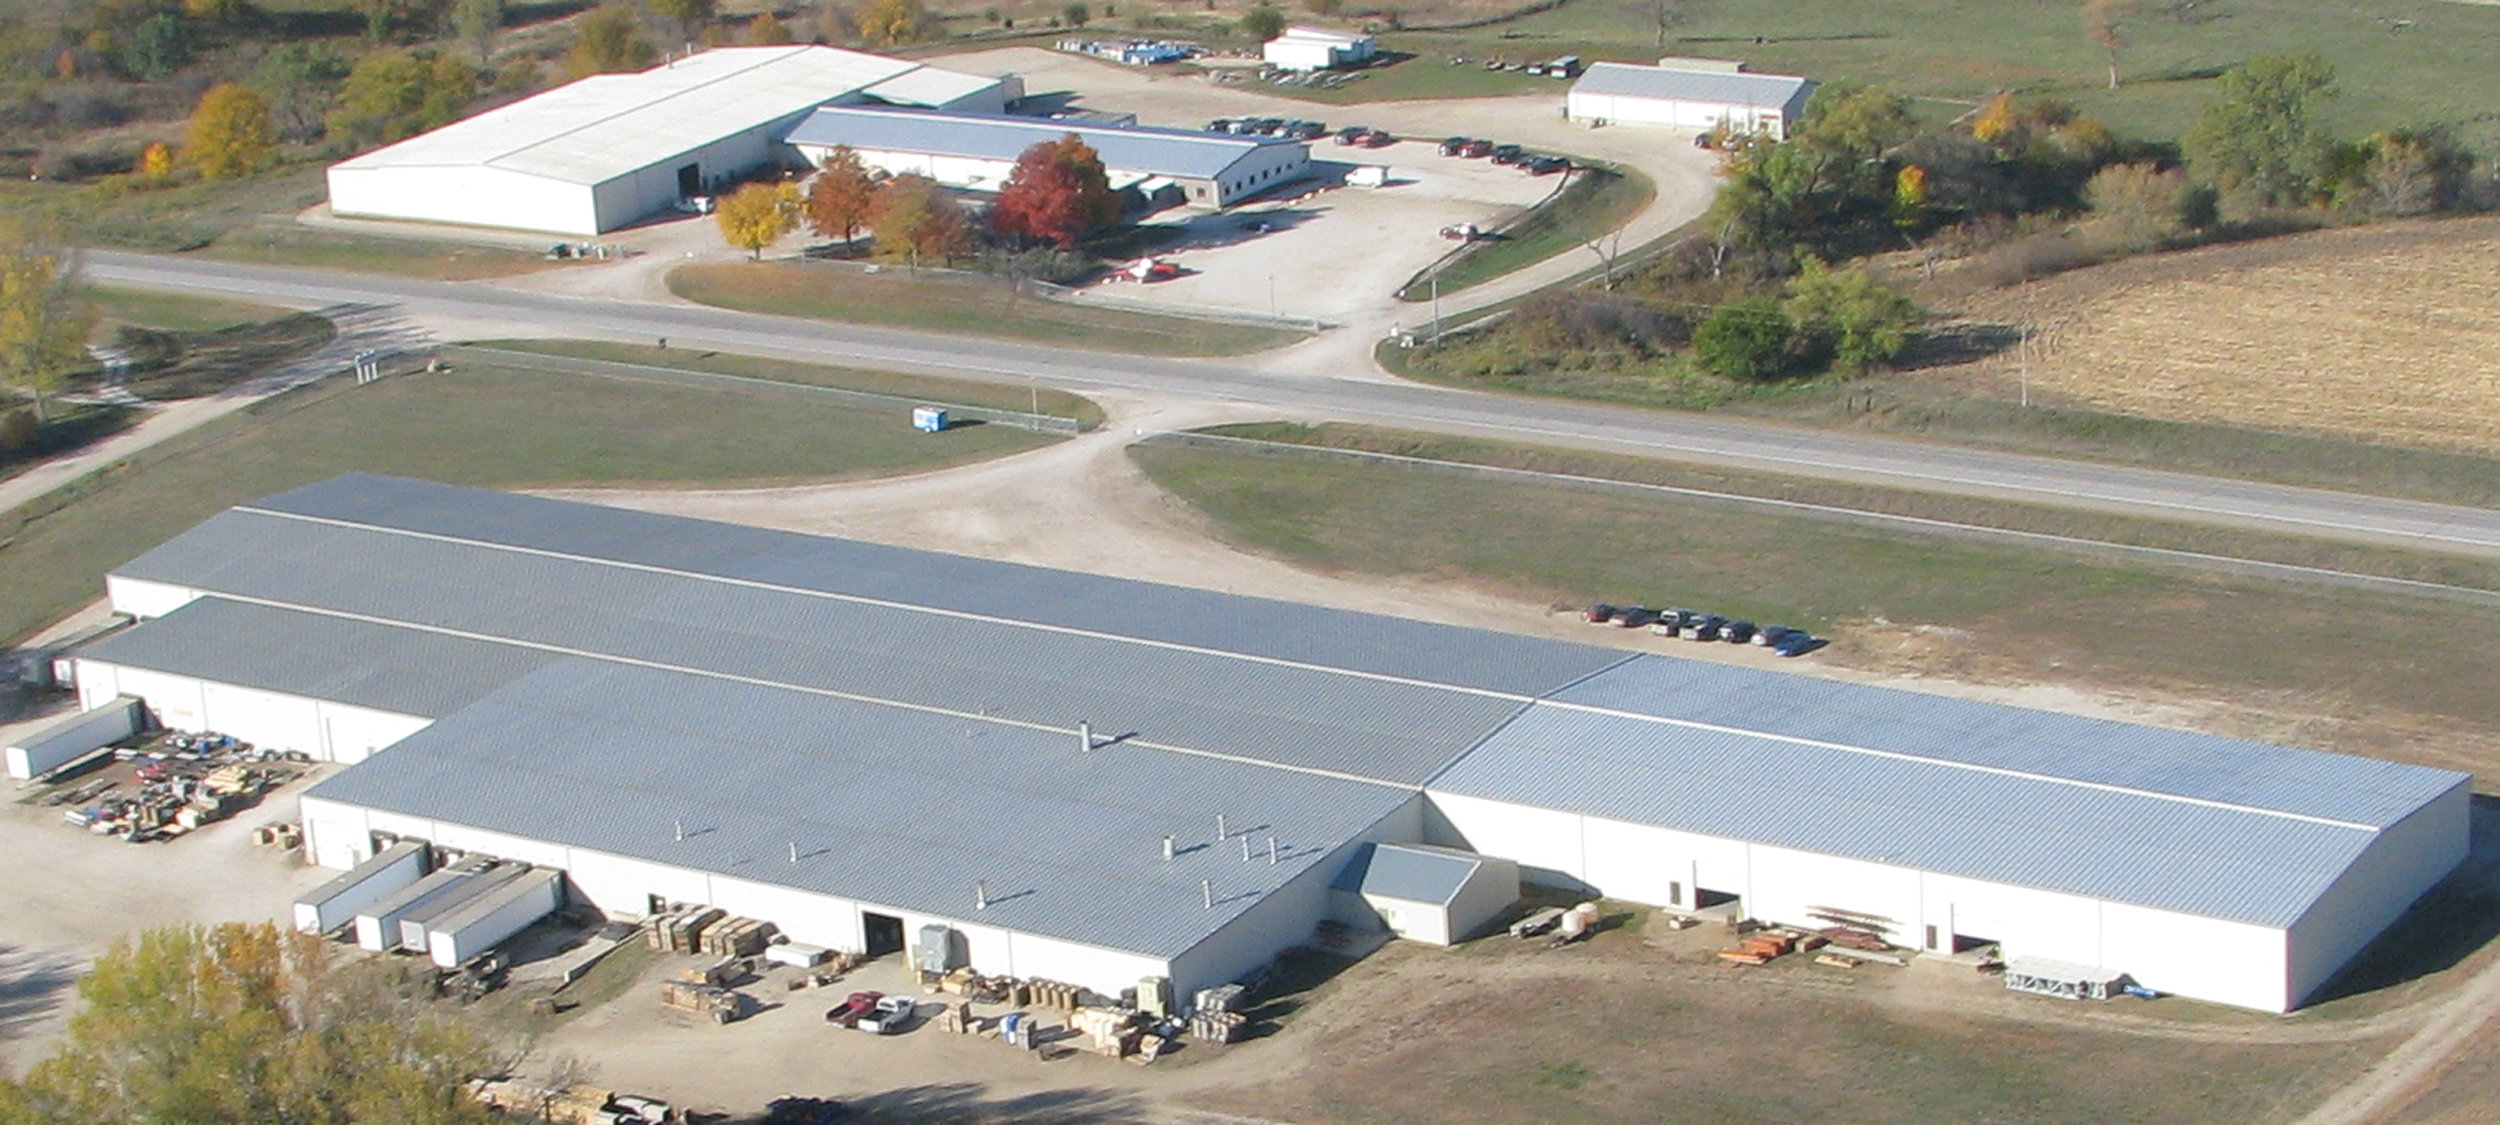 An aerial view of R.J. Thomas Mfg. buildings in 2013.